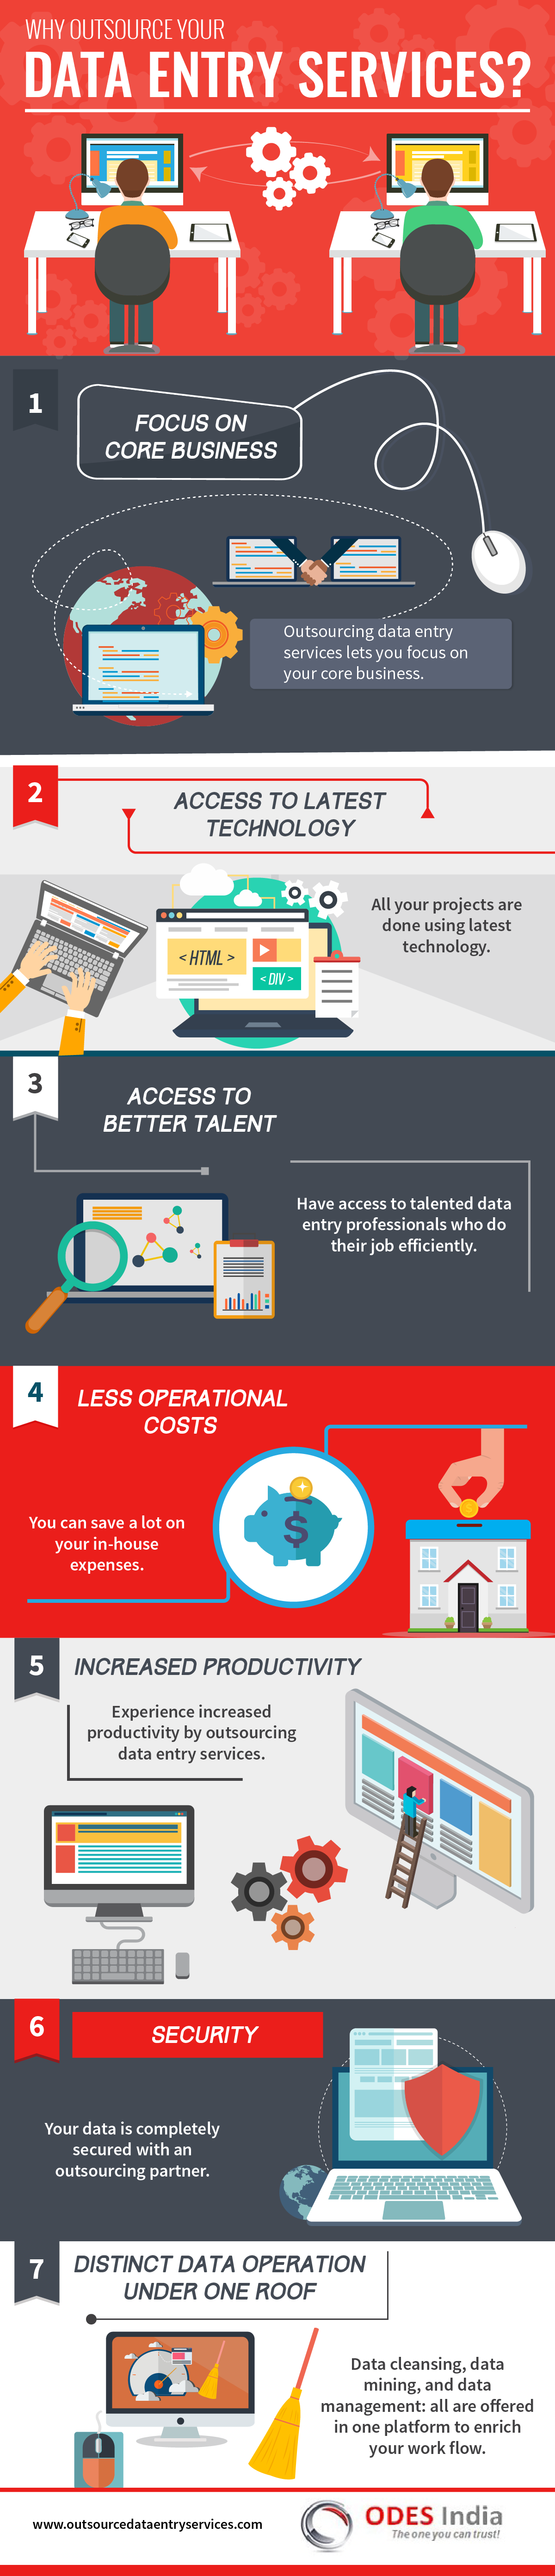 ODES_Infographic